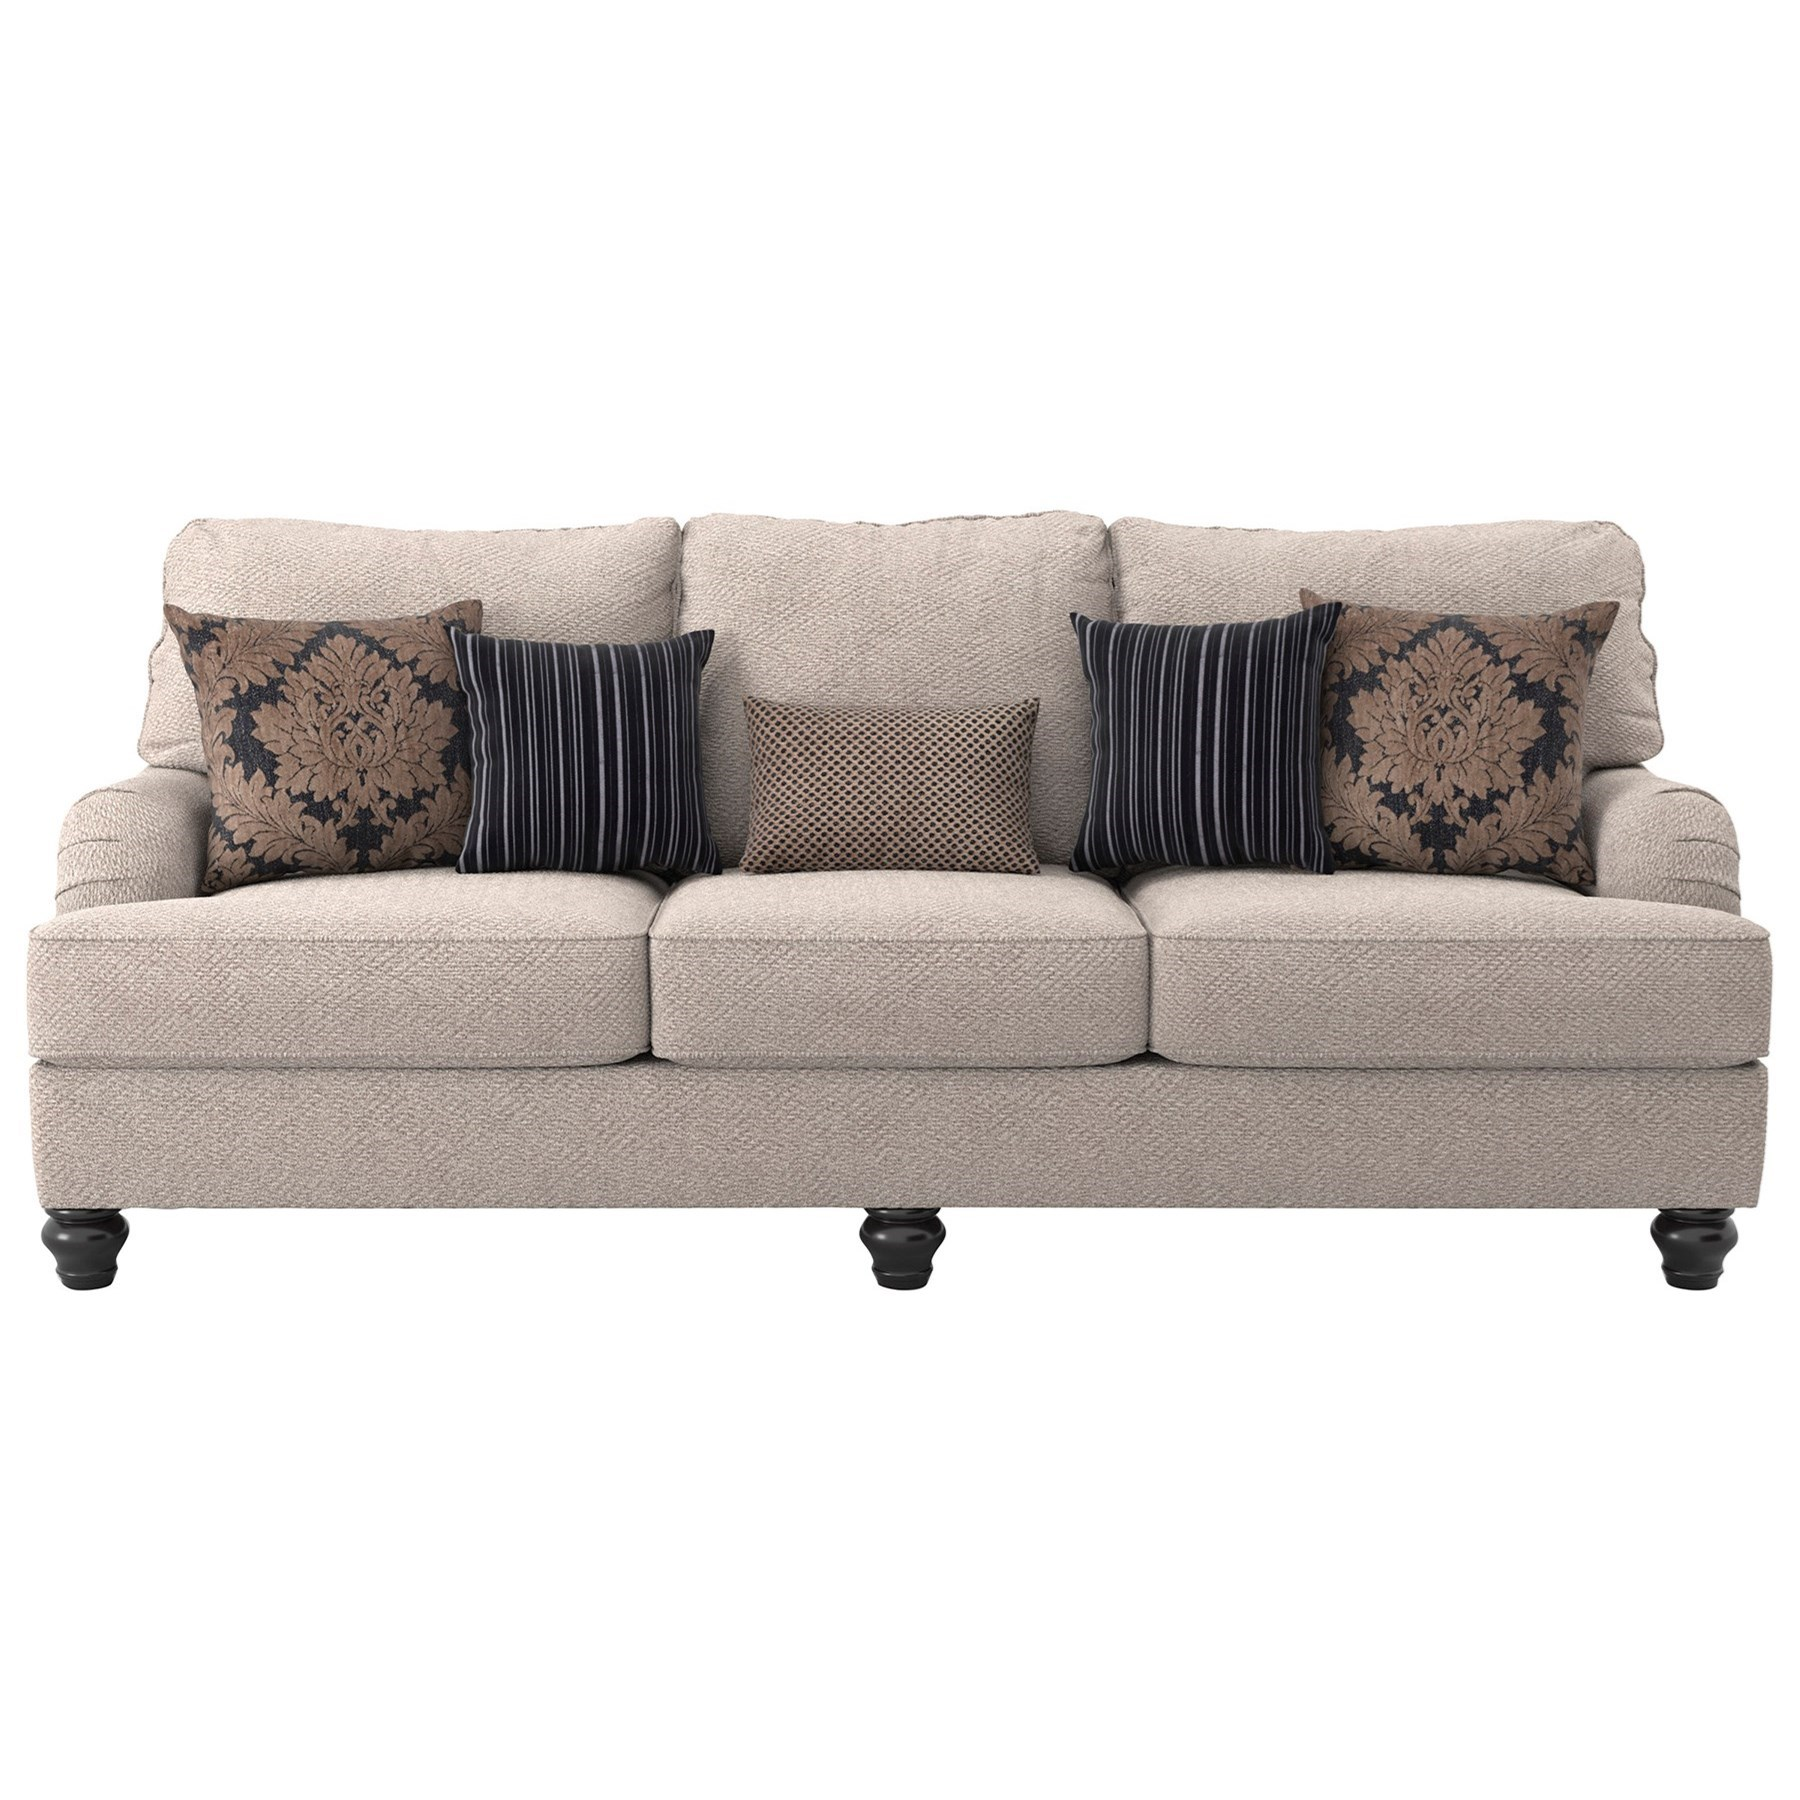 Queen Sofa Sleeper Charcoal Pull Out Queen Sofa Sleeper By